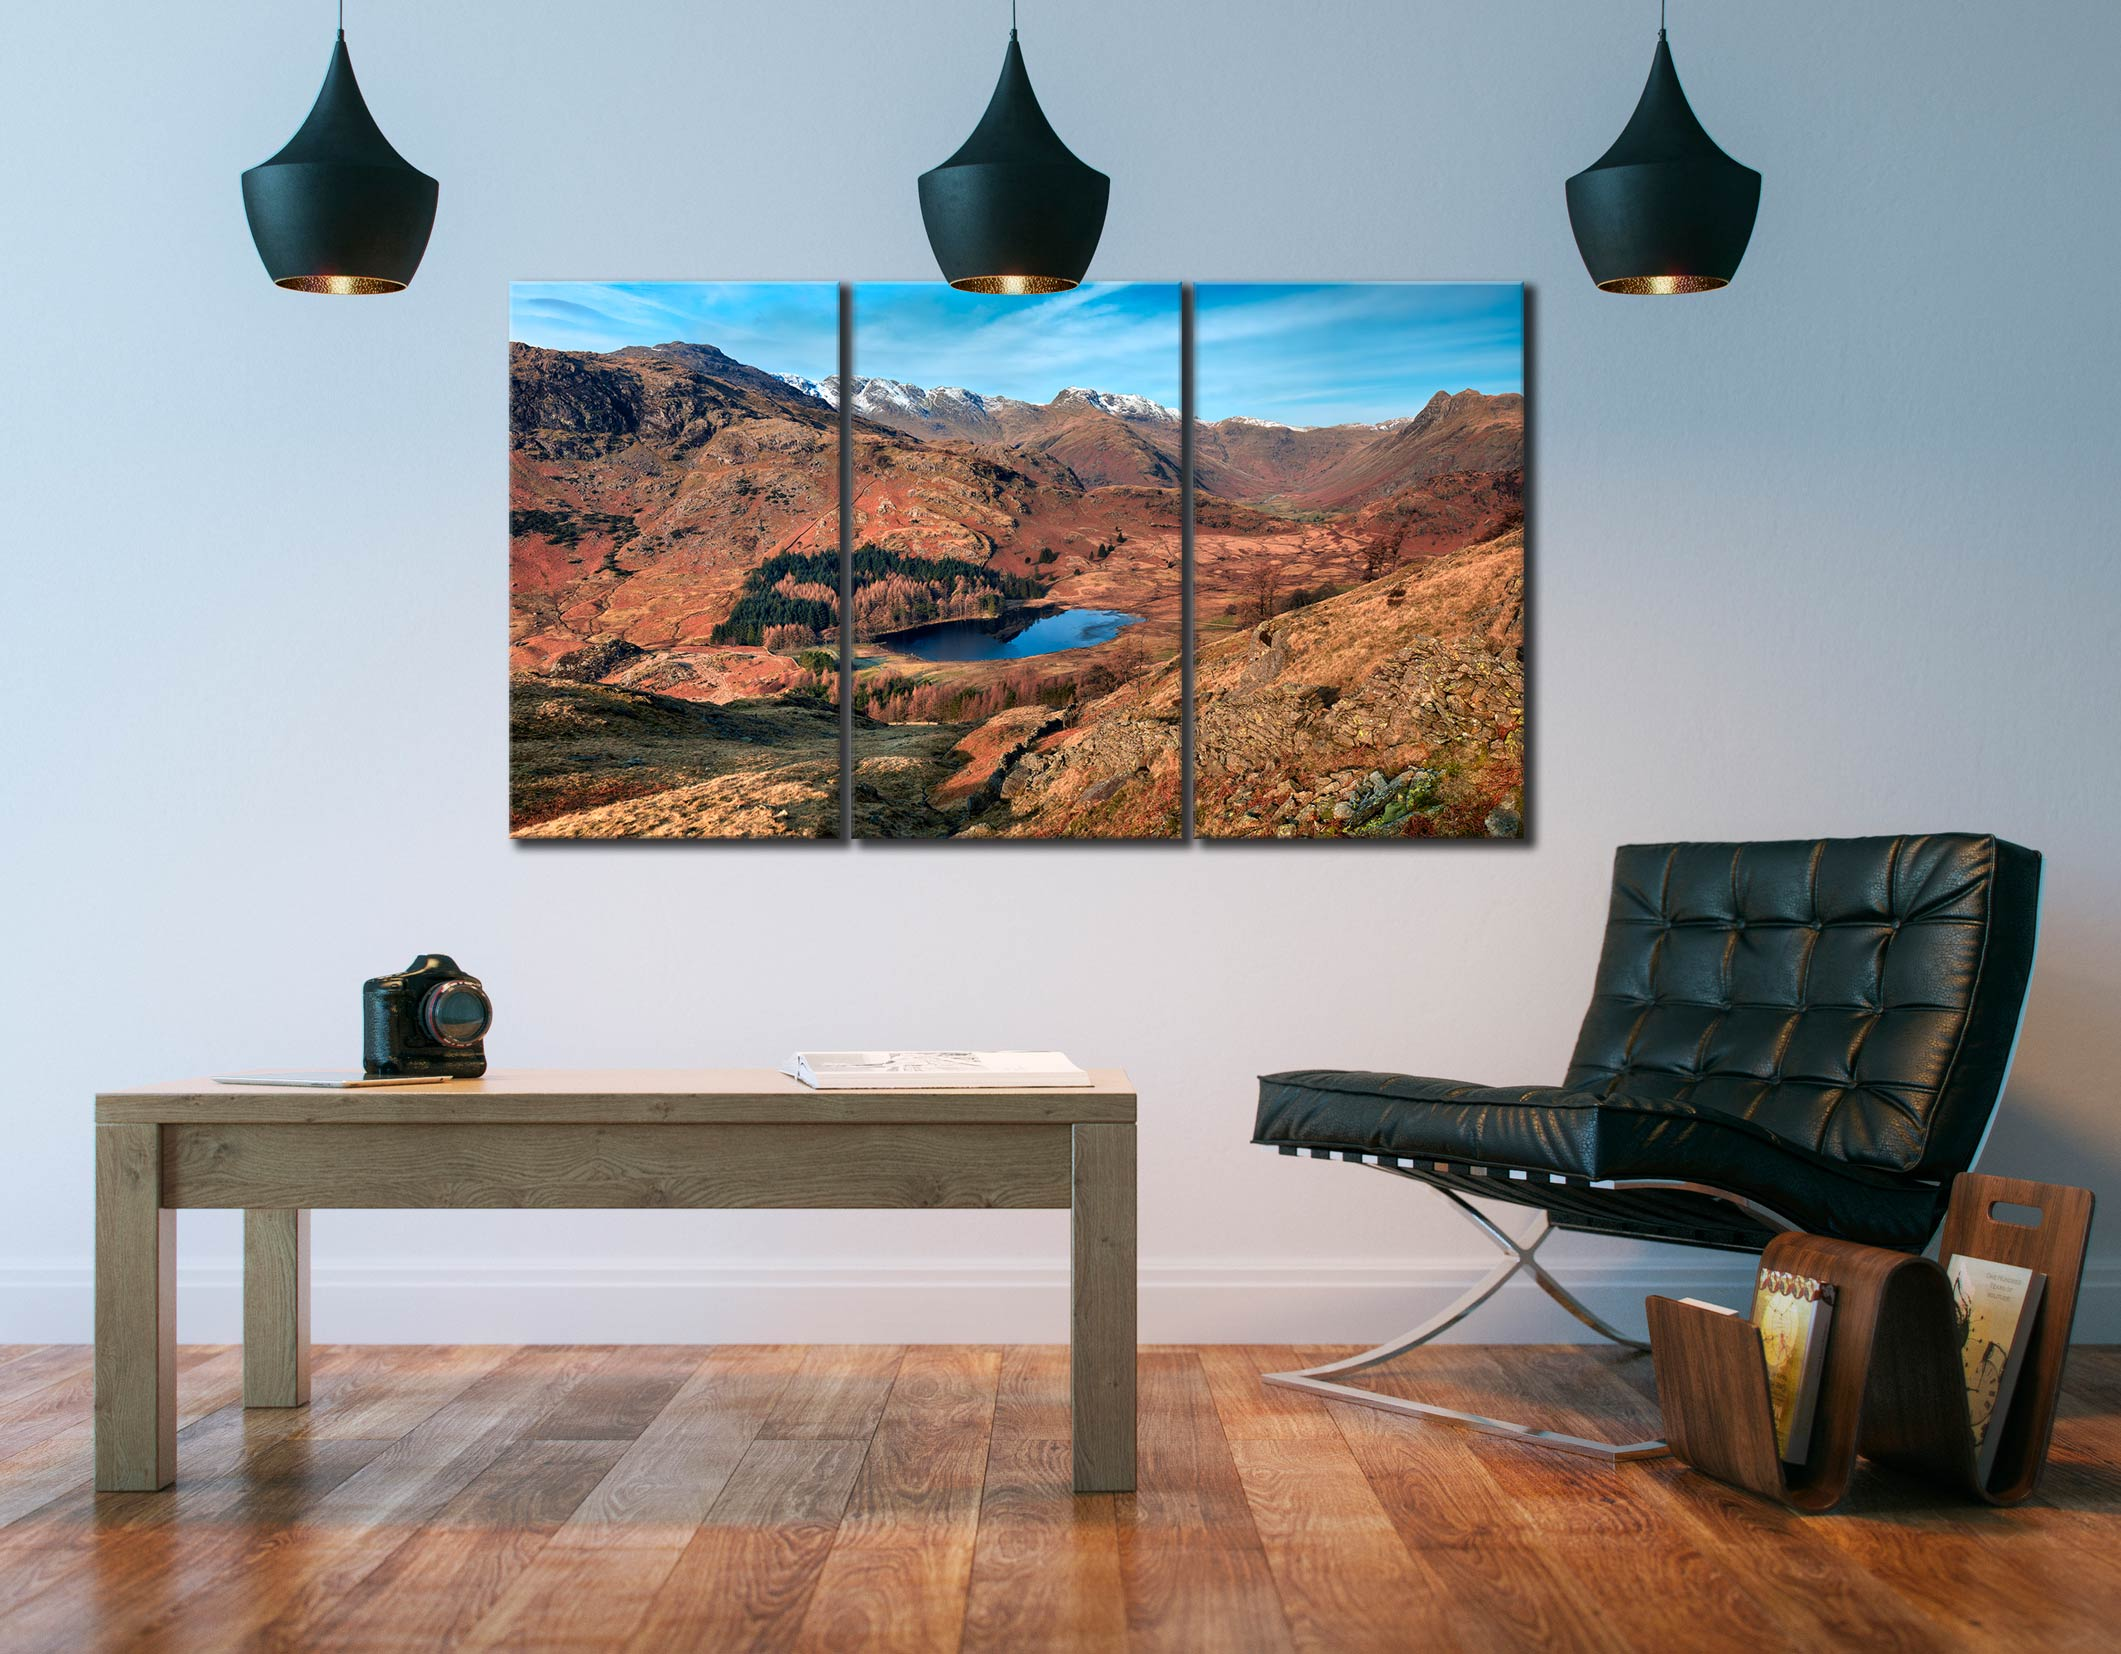 Winter Sun Over Blea Tarn - 3 Panel Canvas on Wall